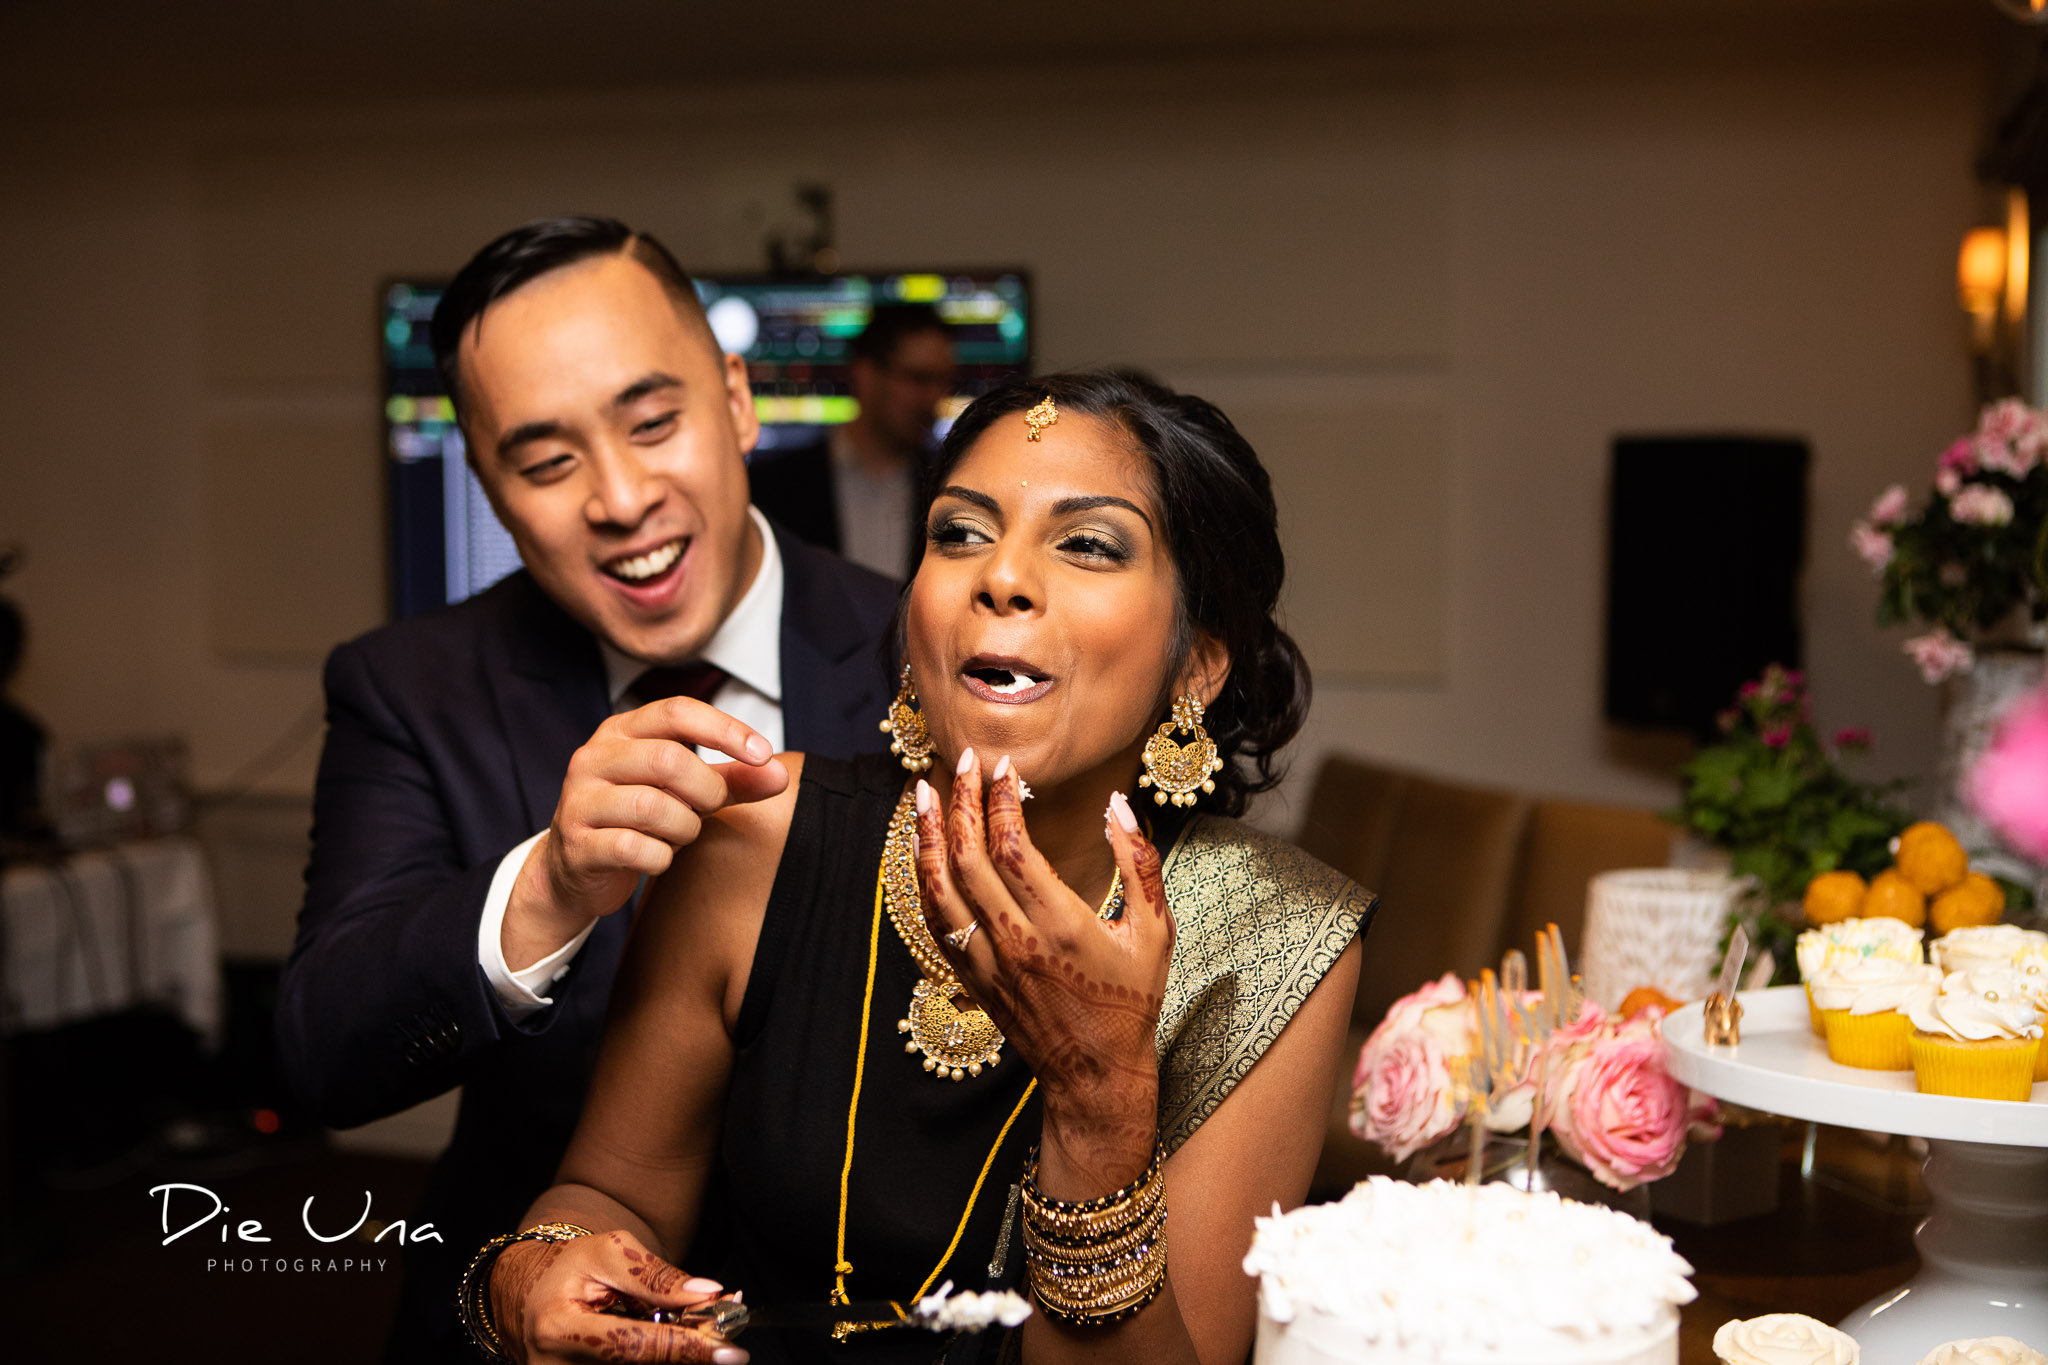 bride eating the cake before groom and laughing.jpg